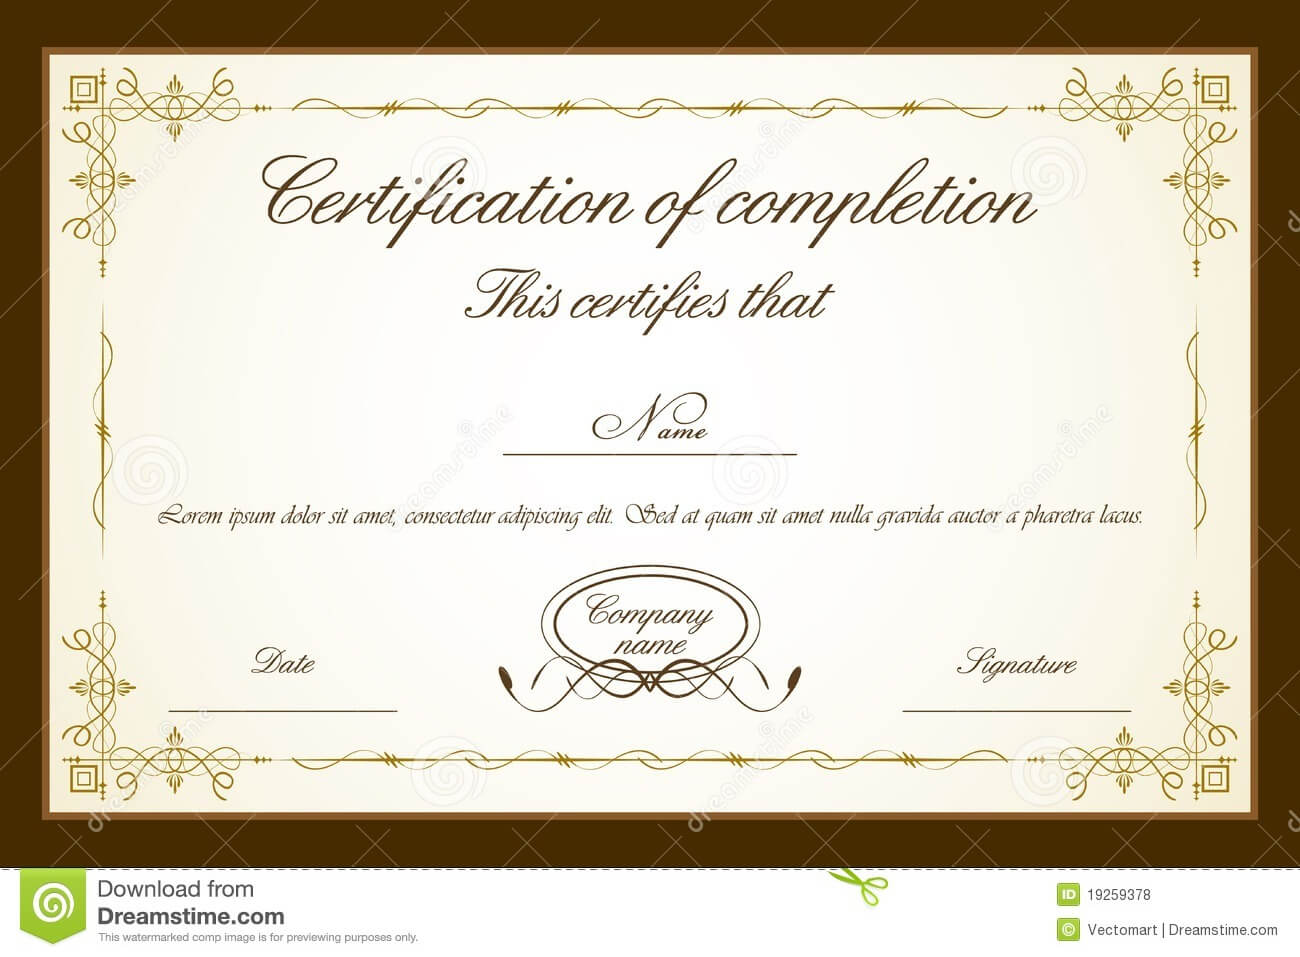 020 Certificate Template Free Blank Templates Wonderful Pertaining To Certificate Templates For Word Free Downloads